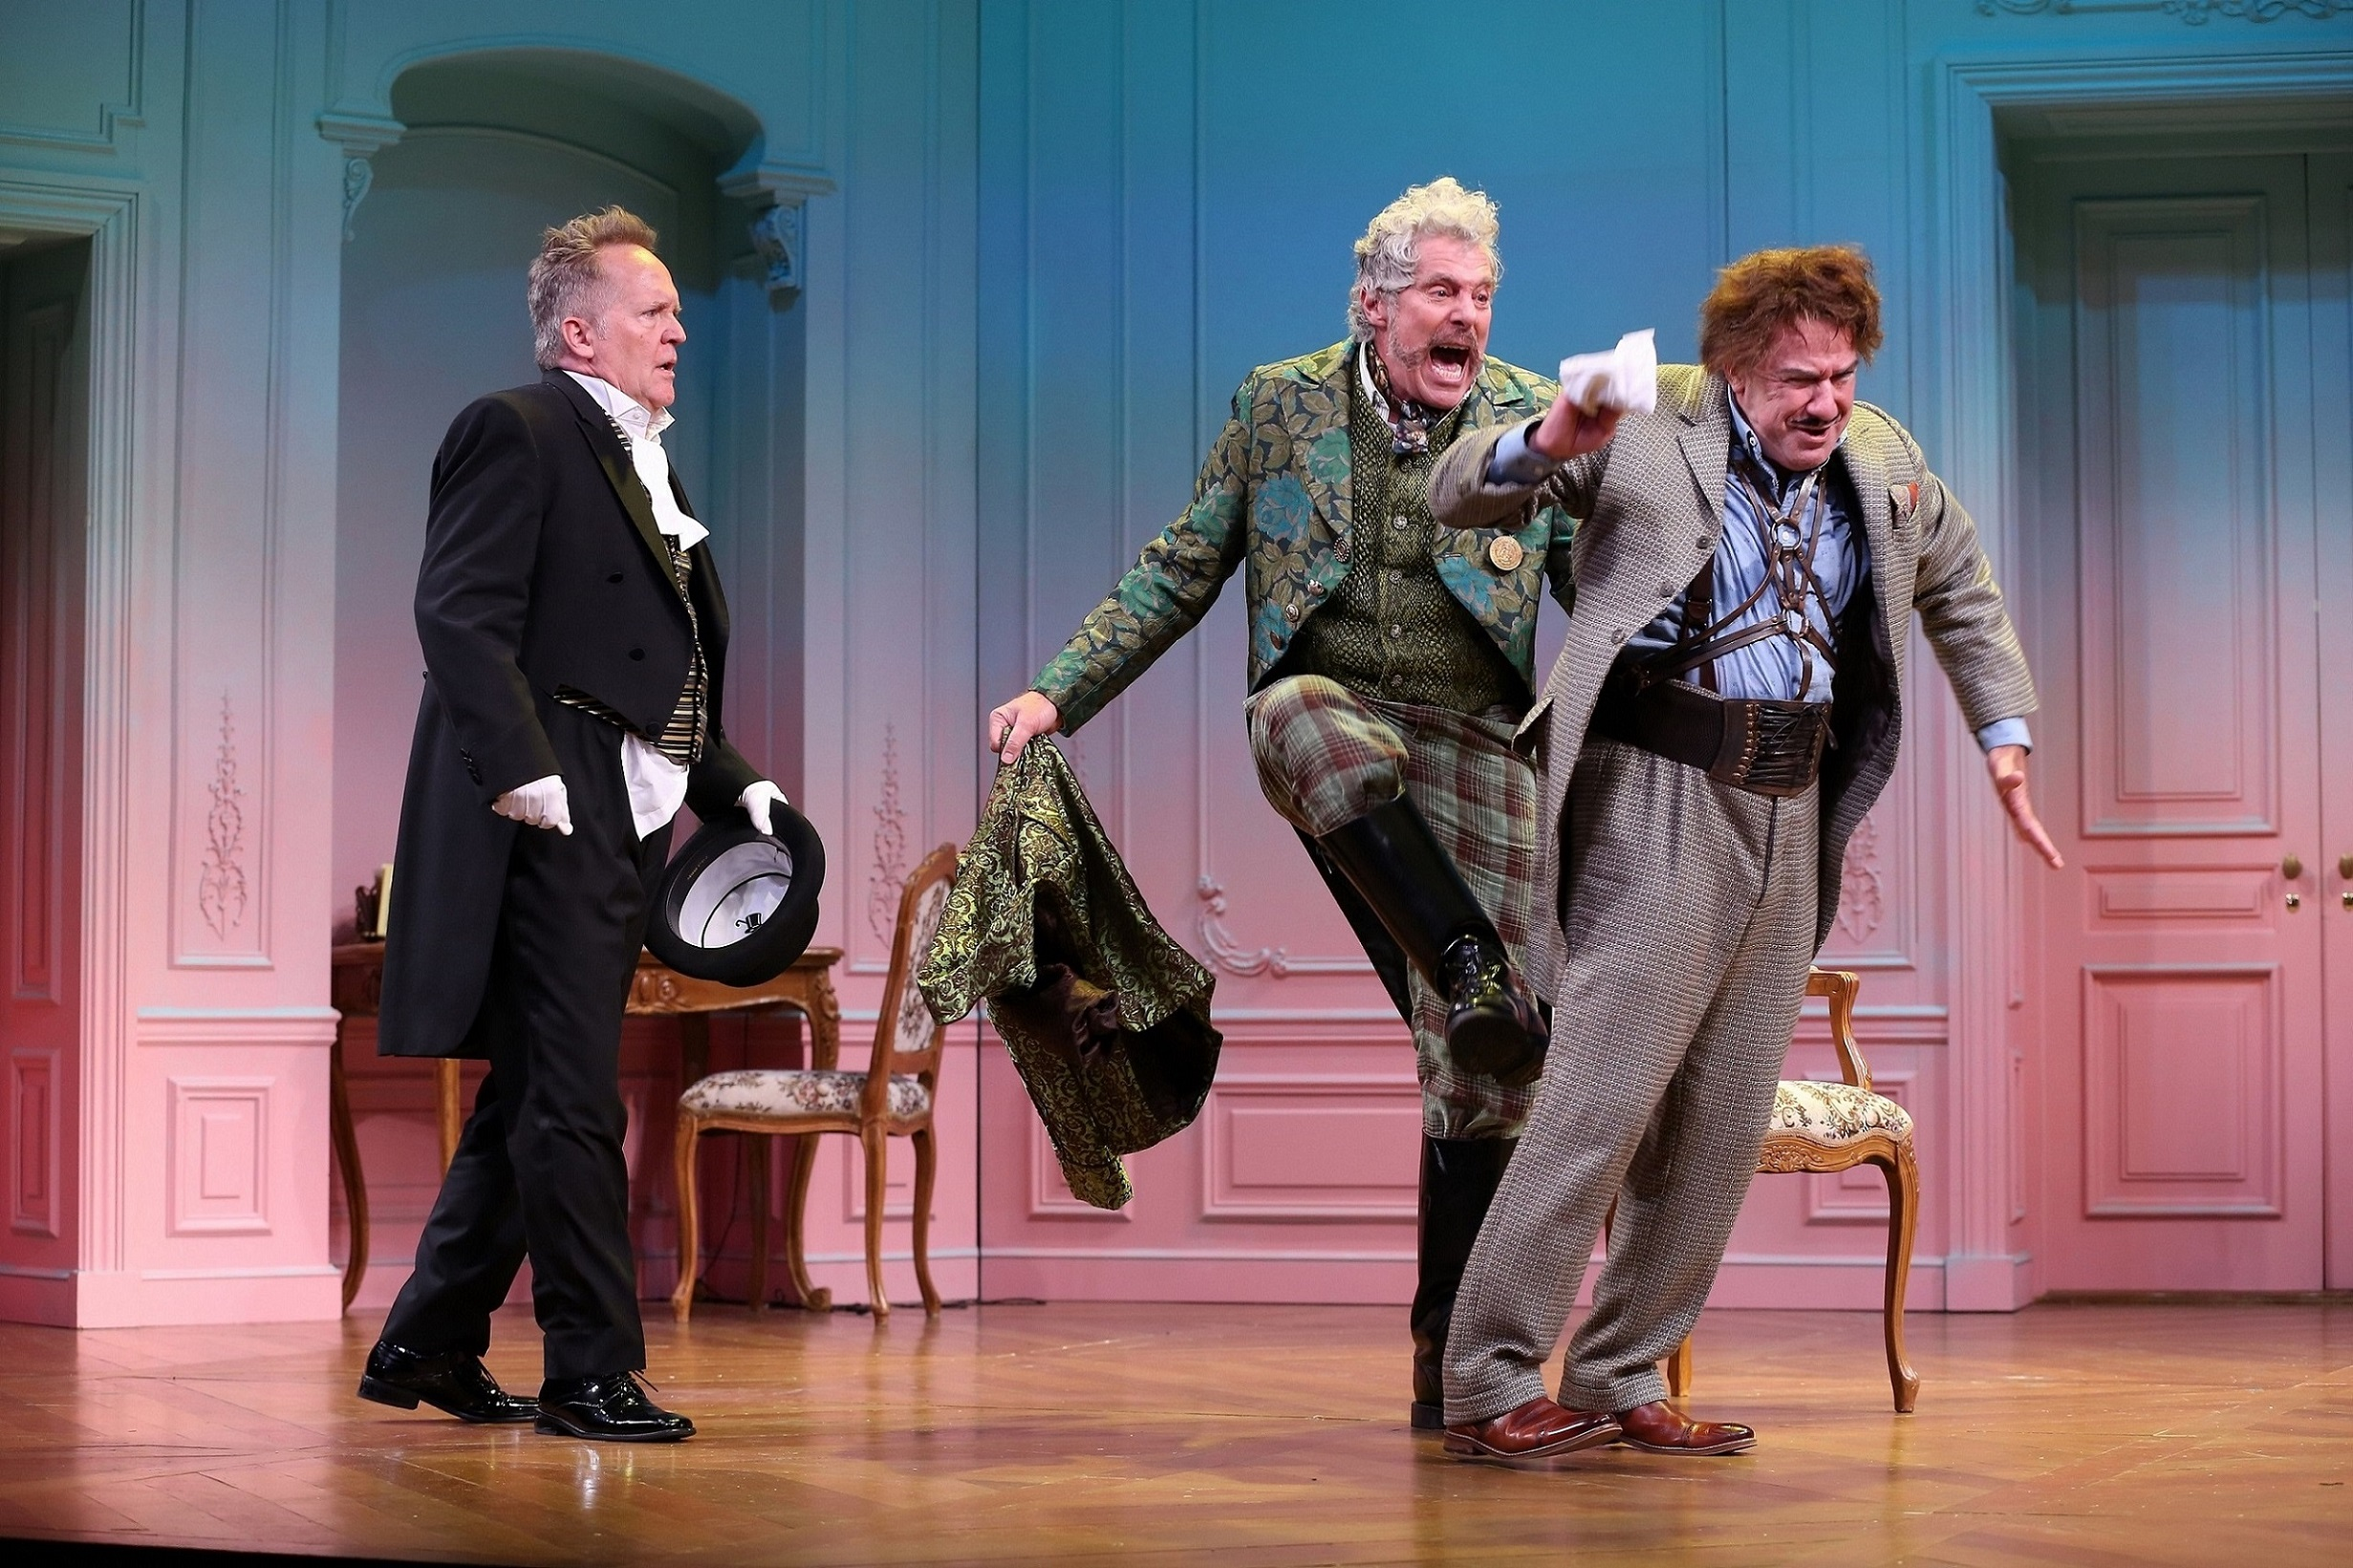 Etienne (David Beach), Ferraillon (John Rensenhouse), Victor Chandebise (Lee E. Ernst) (photo by Carol Rosegg)